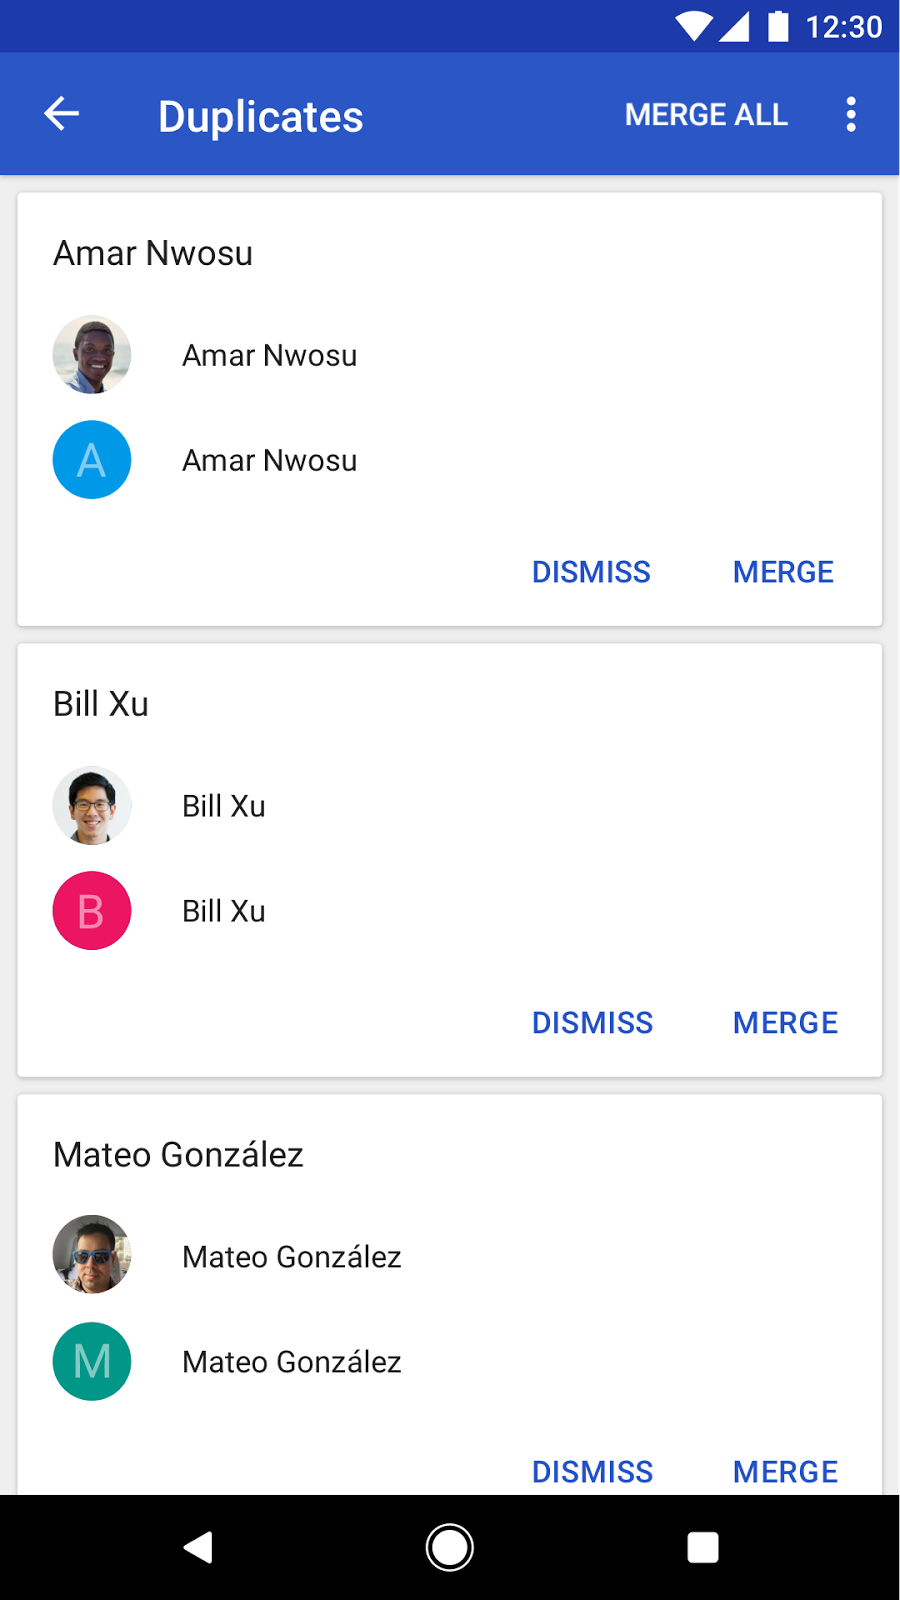 Google Contacts app for Android: merge duplicates